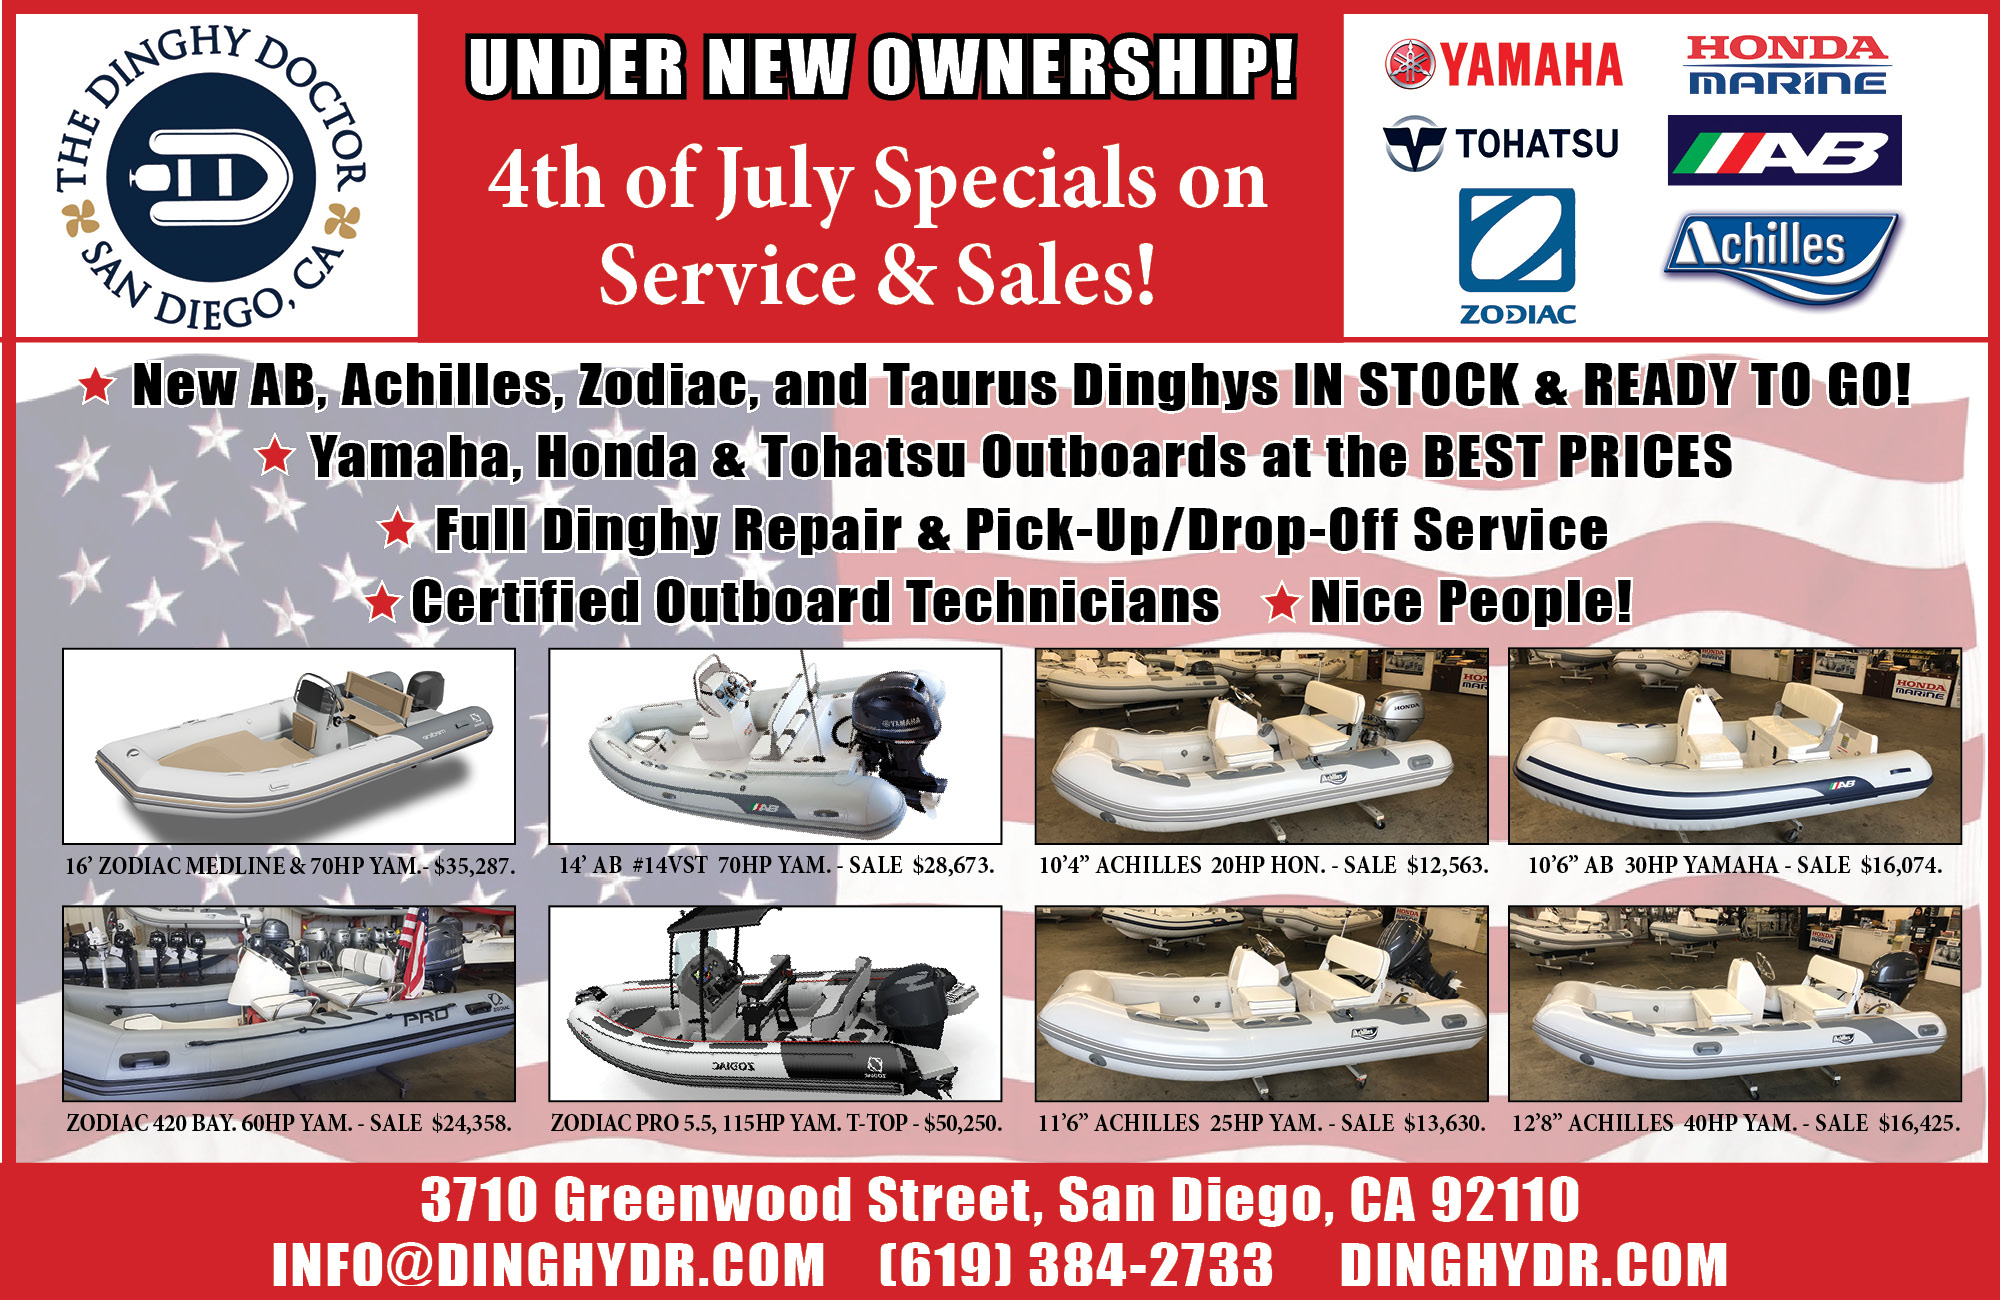 Inflatables, Outboards & Dinghy Sales and Service - The